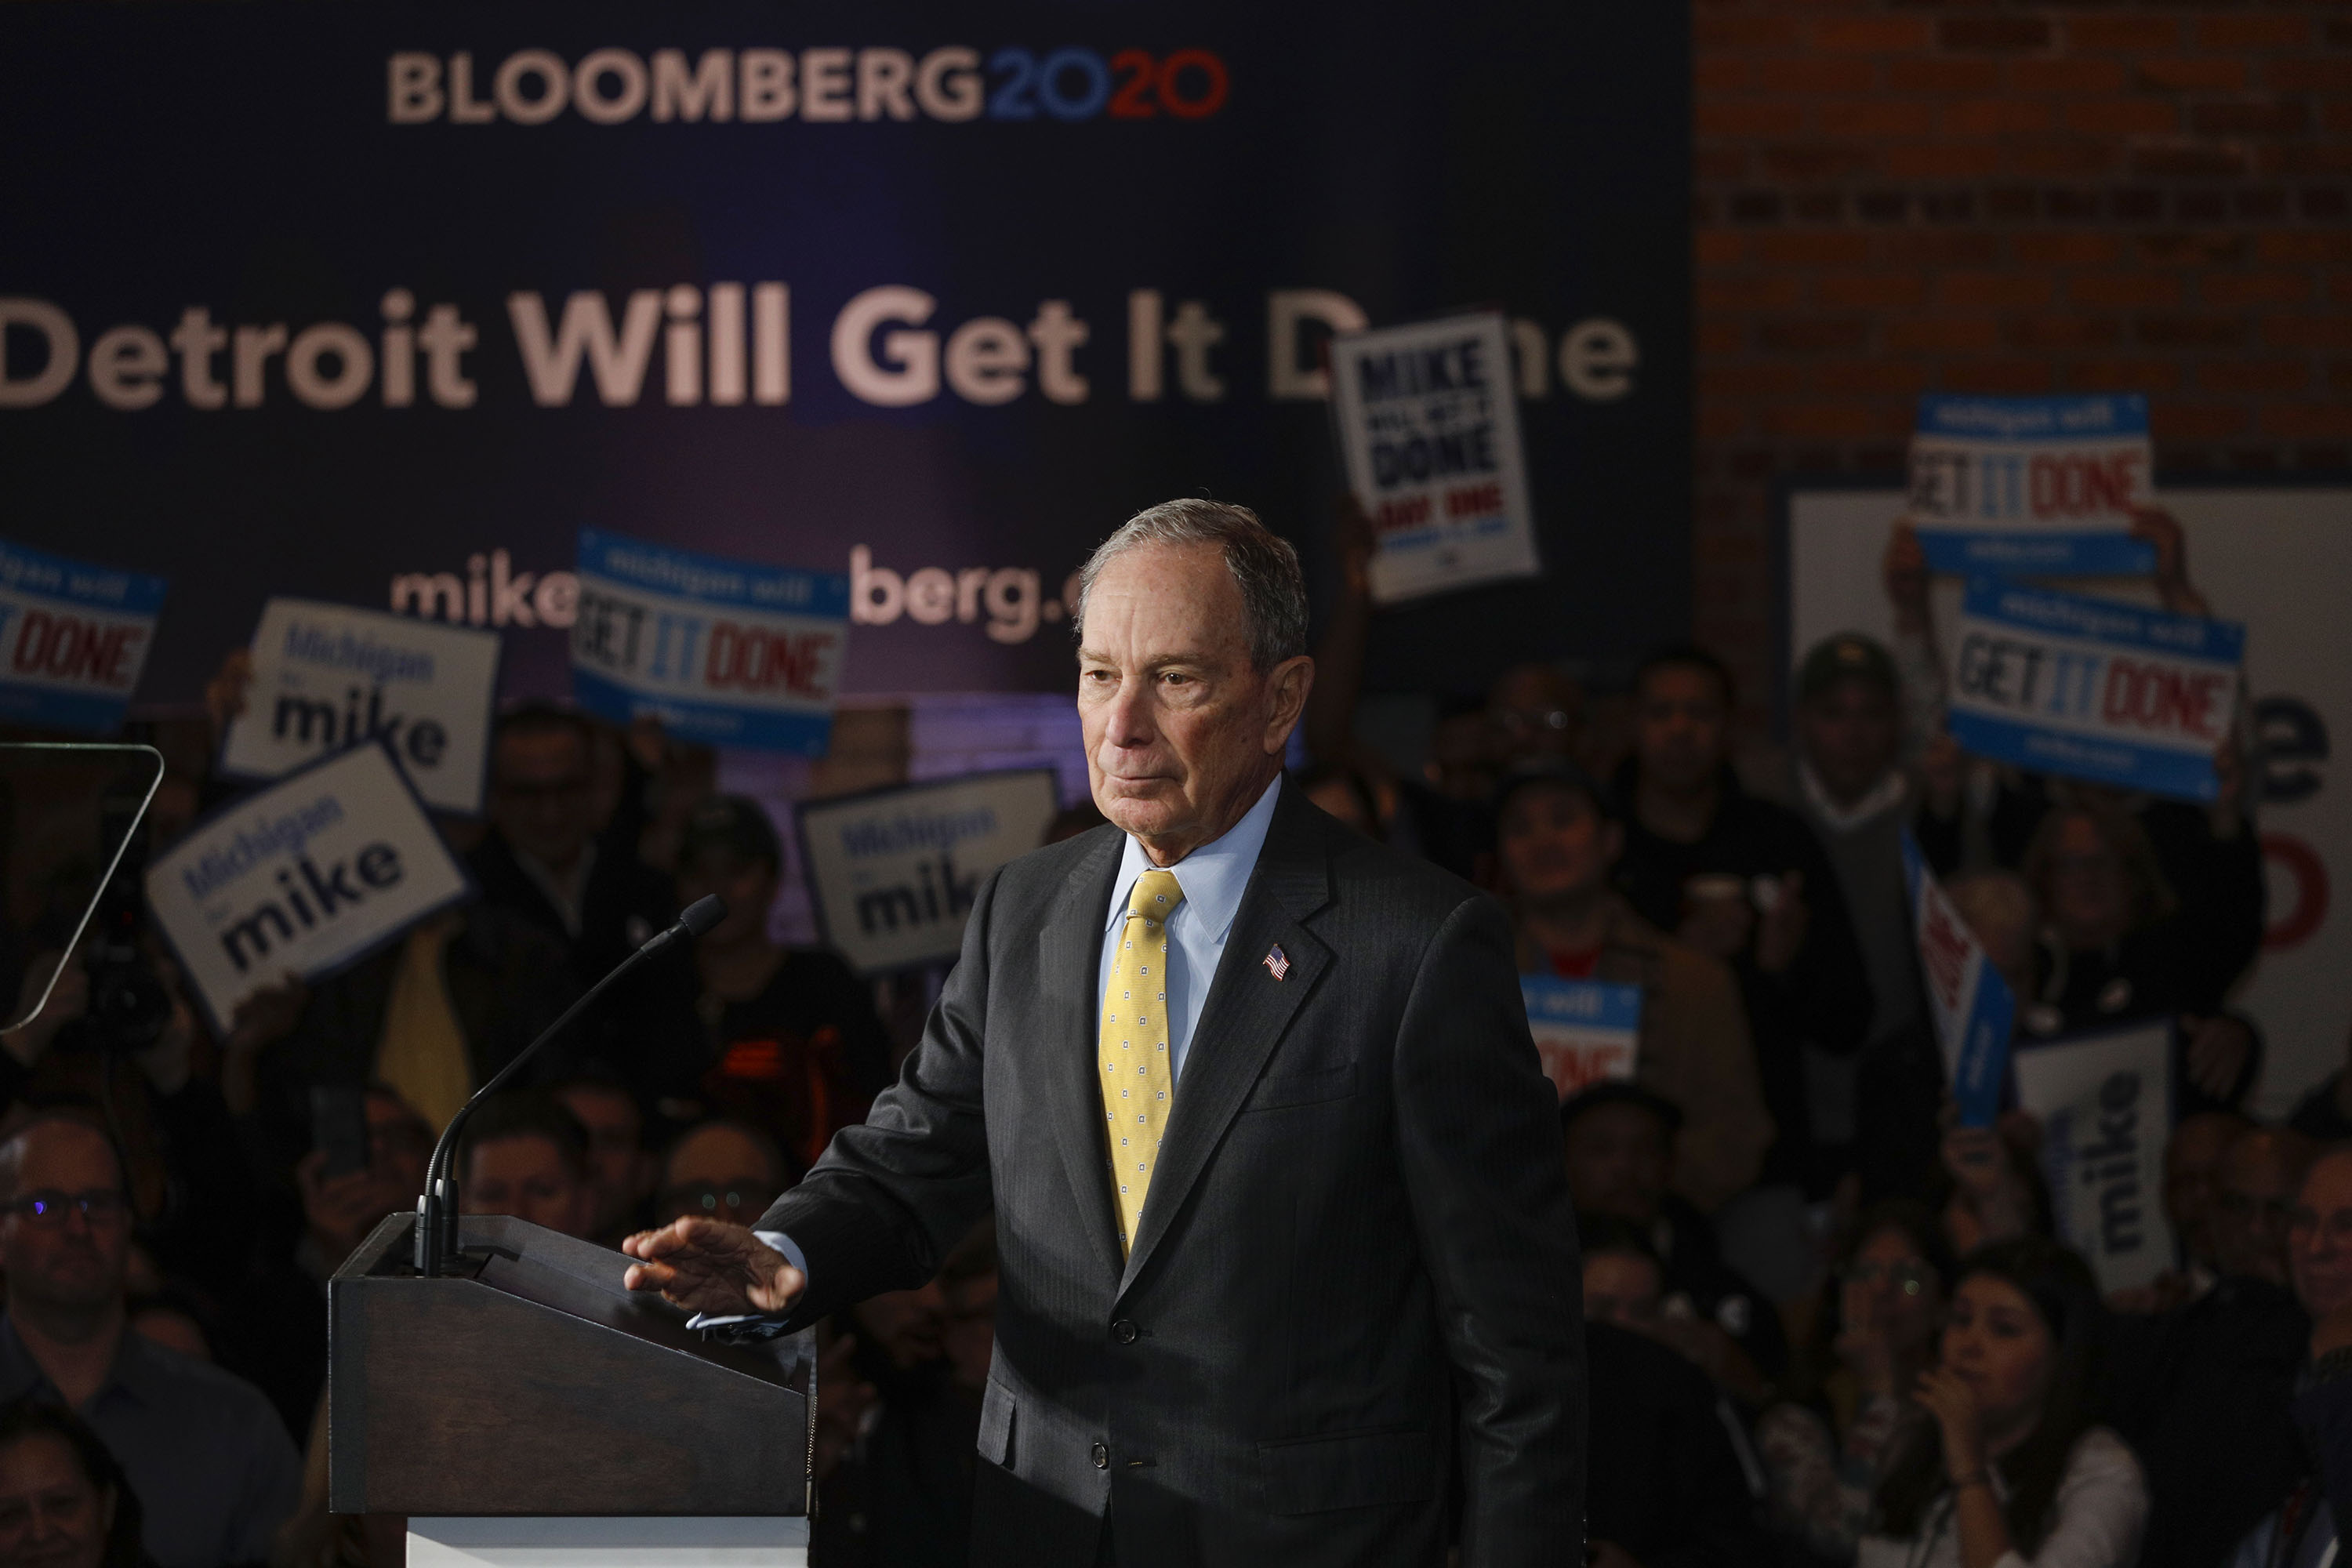 DETROIT, MI - FEBRUARY 04: Democratic presidential candidate former New York City Mayor Mike Bloomberg holds a campaign rally on February 4, 2020 in Detroit, Michigan. Bloomberg is planning to skip the early primaries and focus his efforts on Super Tuesday and beyond. (Photo by Bill Pugliano/Getty Images)